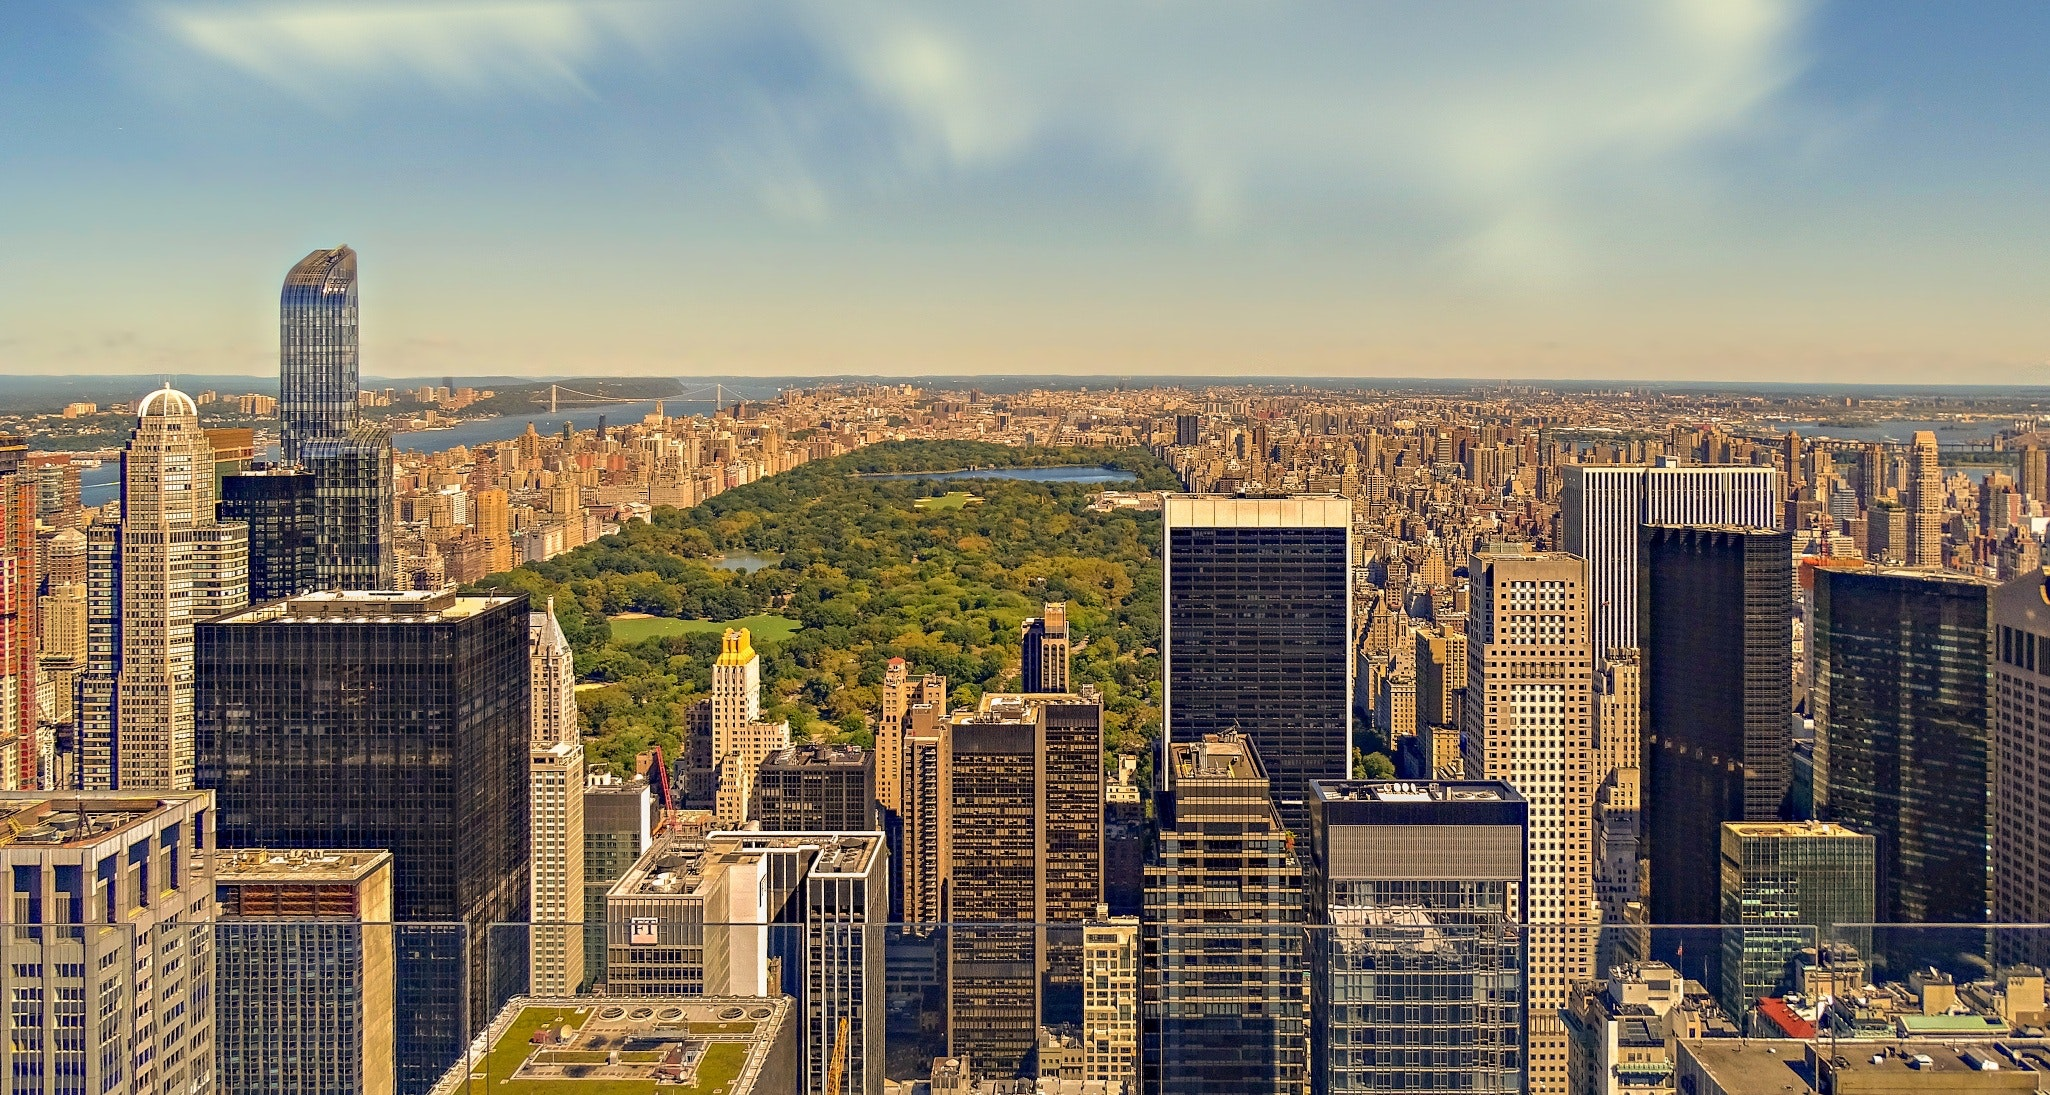 Aerial View of Cityscape, Architecture, Panoramic, Urban, Travel, HQ Photo